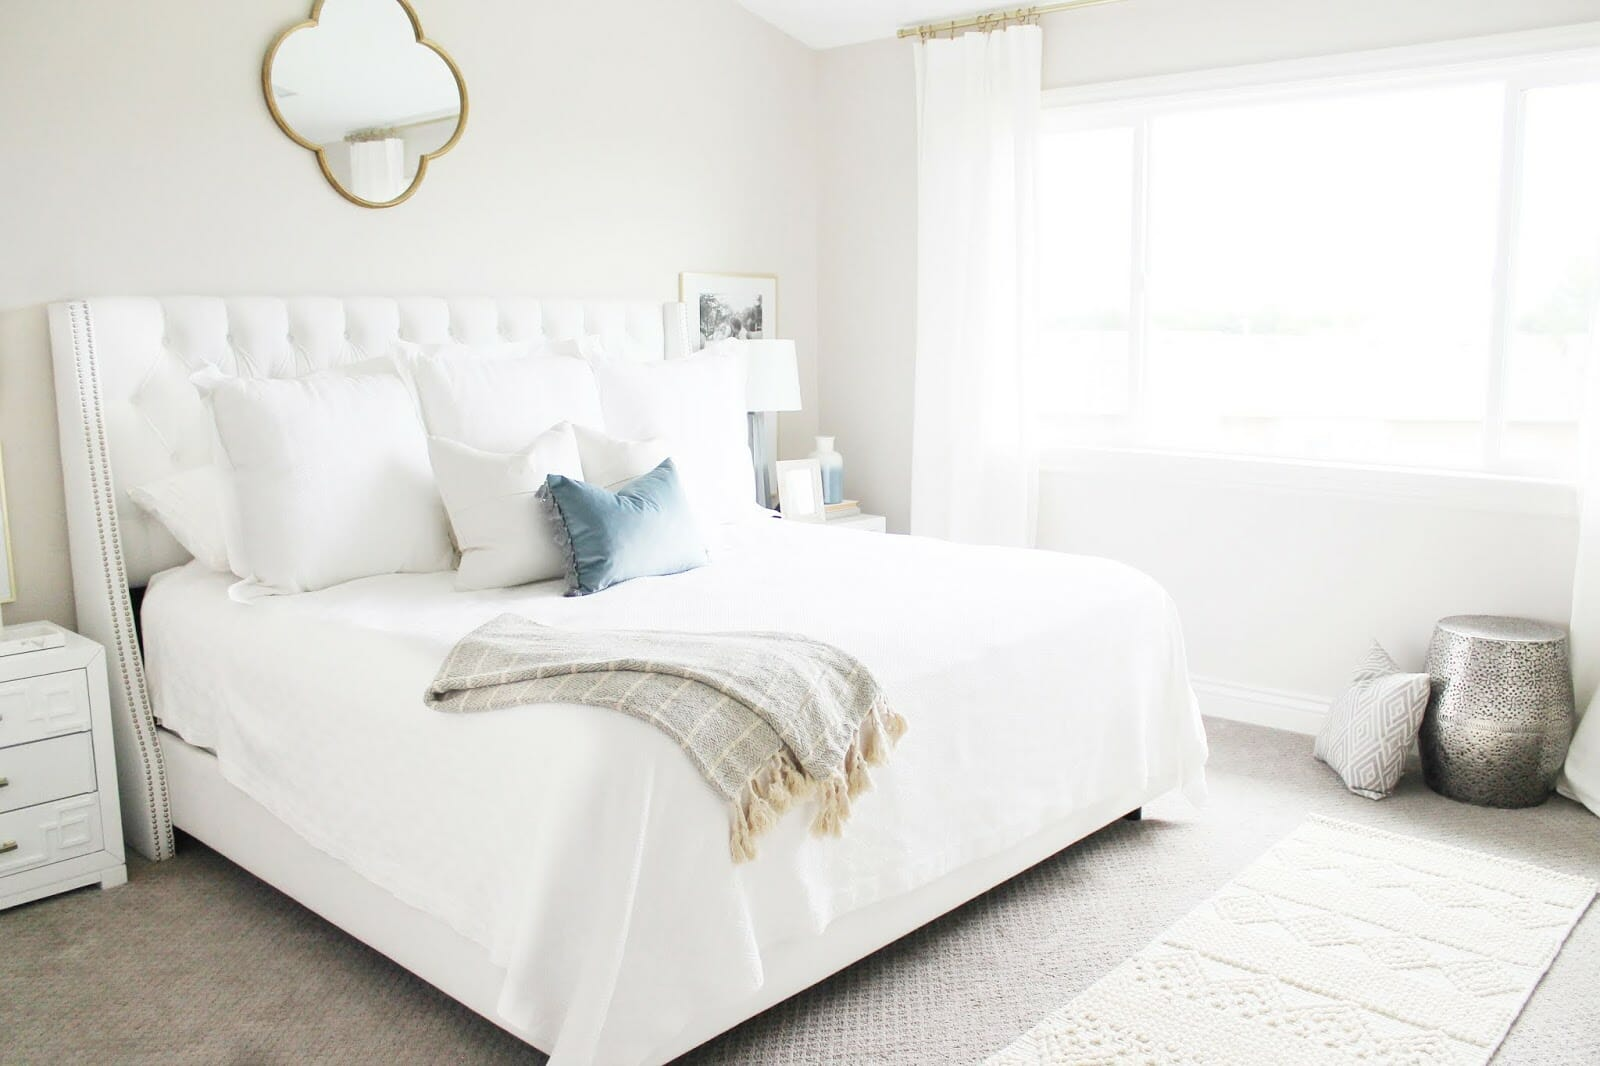 California Spa Inspired Bedroom Refresh (Three Tips for Making Your Bedroom Feel Like a Spa)